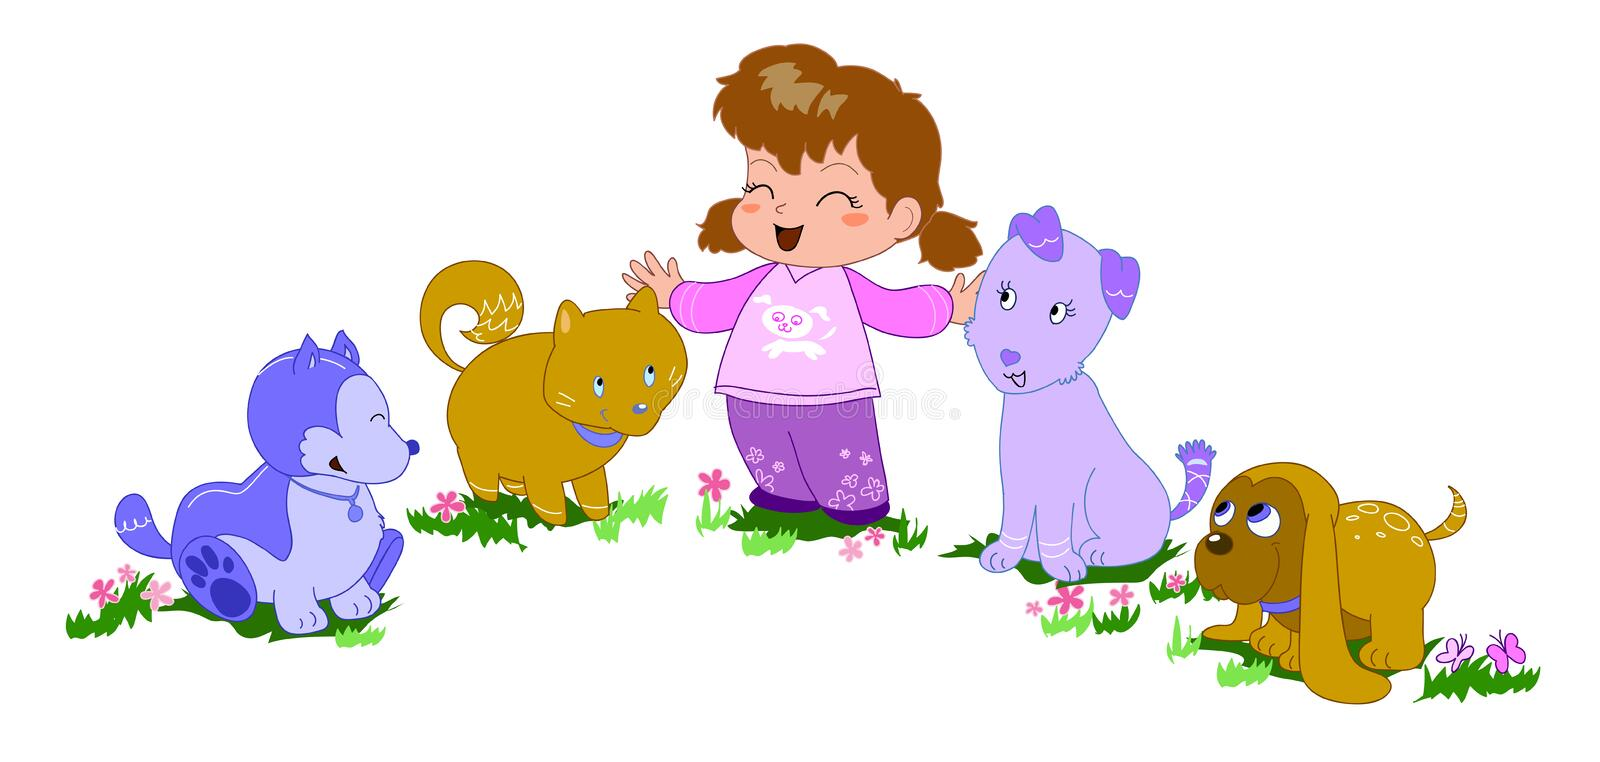 Happy girl with dogs-vector illustration royalty free illustration